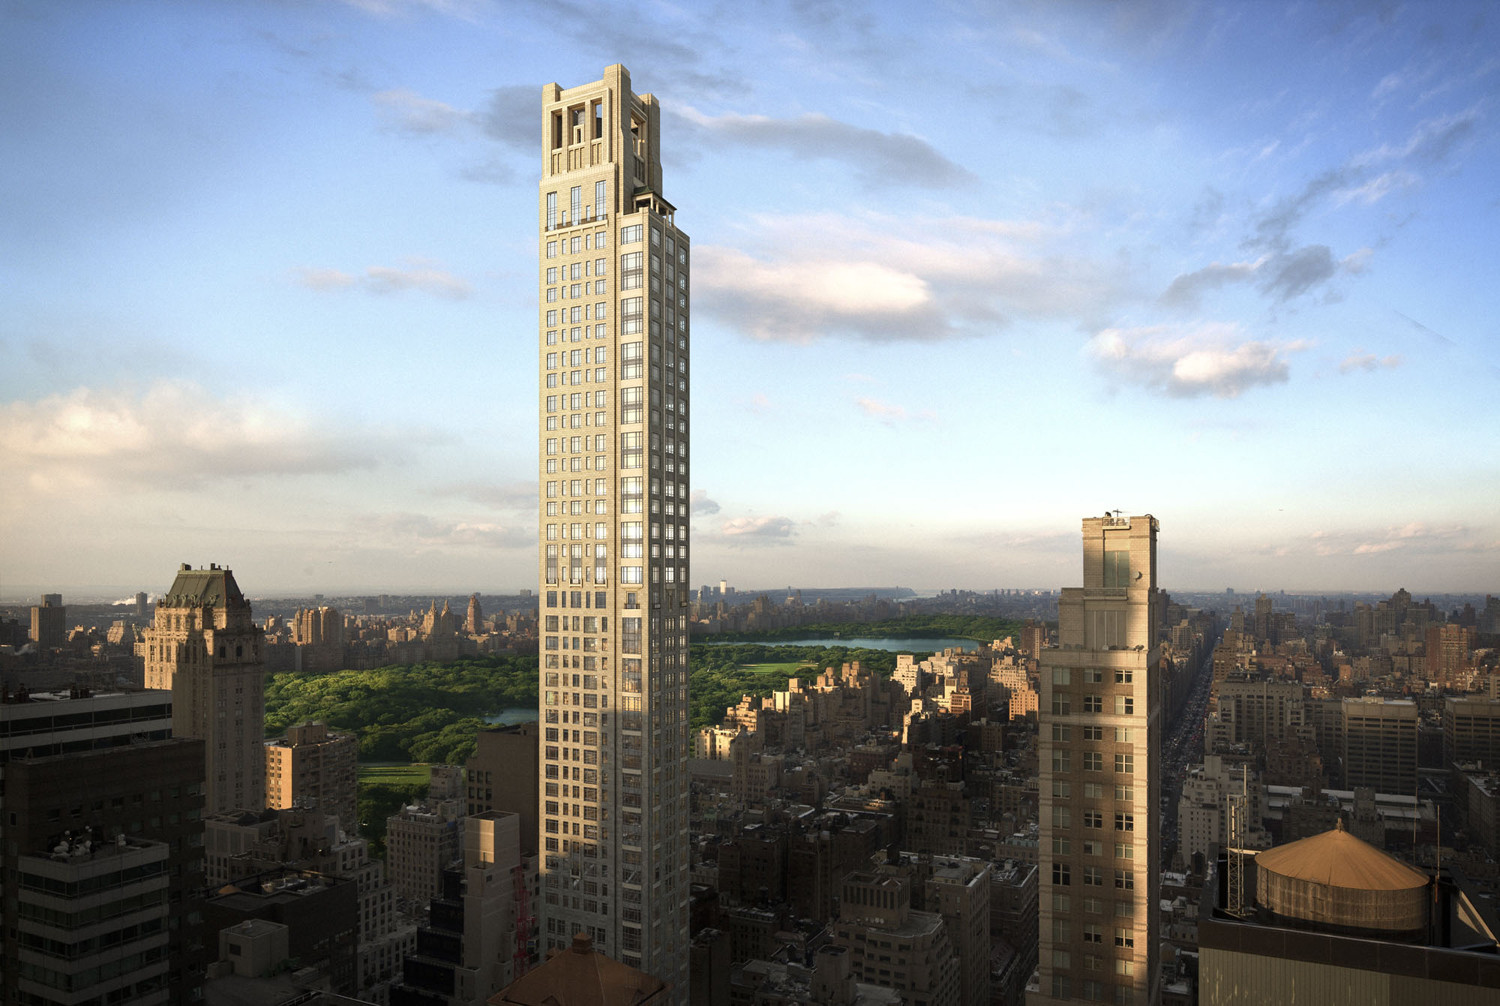 © Zeckendorf Development LLC and Seventh Art; Courtesy of Curbed NY